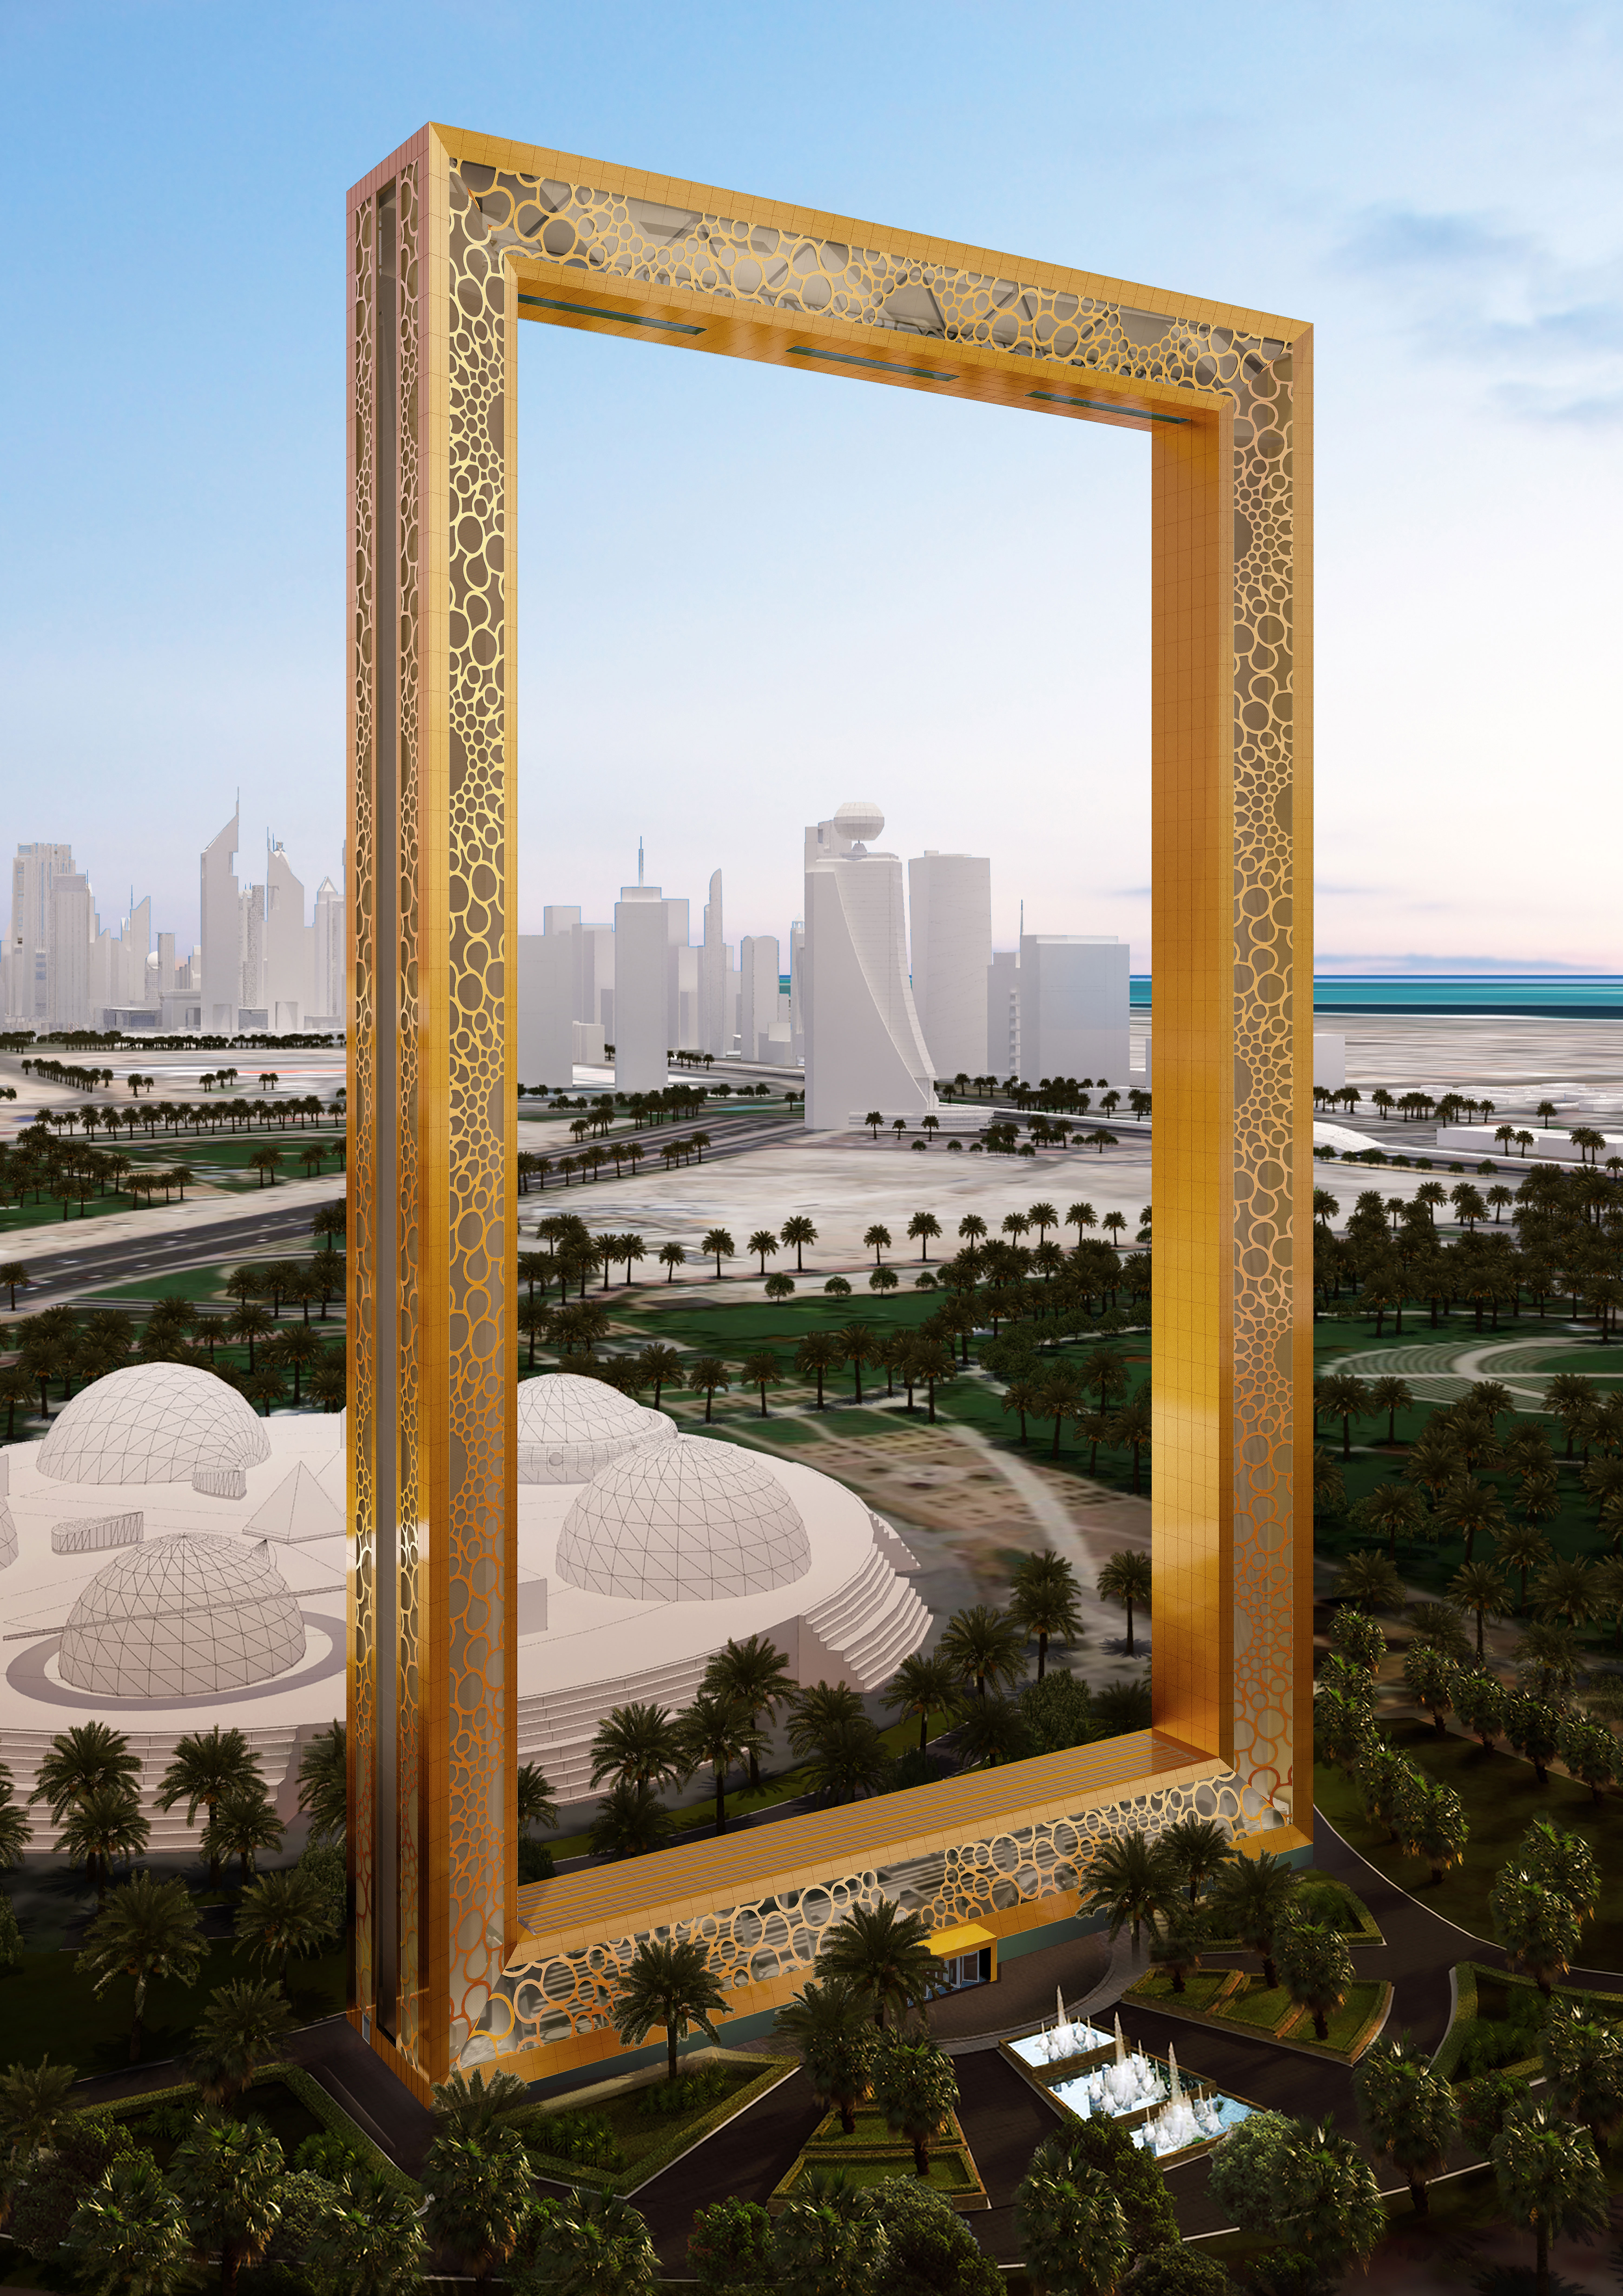 Dubai S Stunning 50 Story Gold Plated Frame To Be